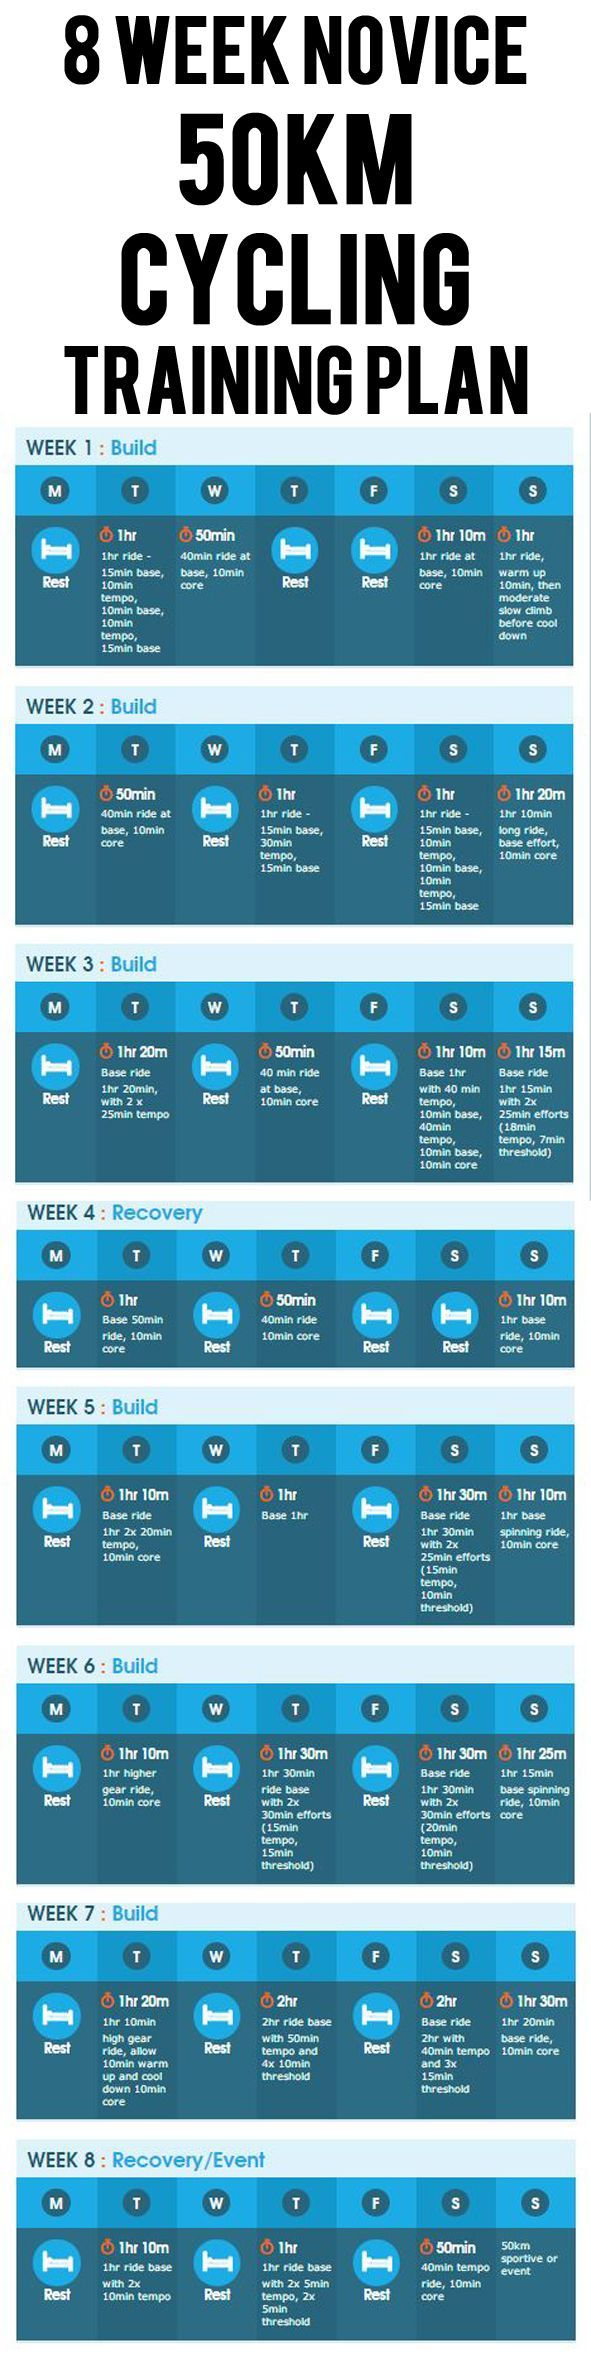 8 Week Novice 50km Cycling Training Plans Training Plans Cycling Training Plan Biking Workout Cycling For Beginners